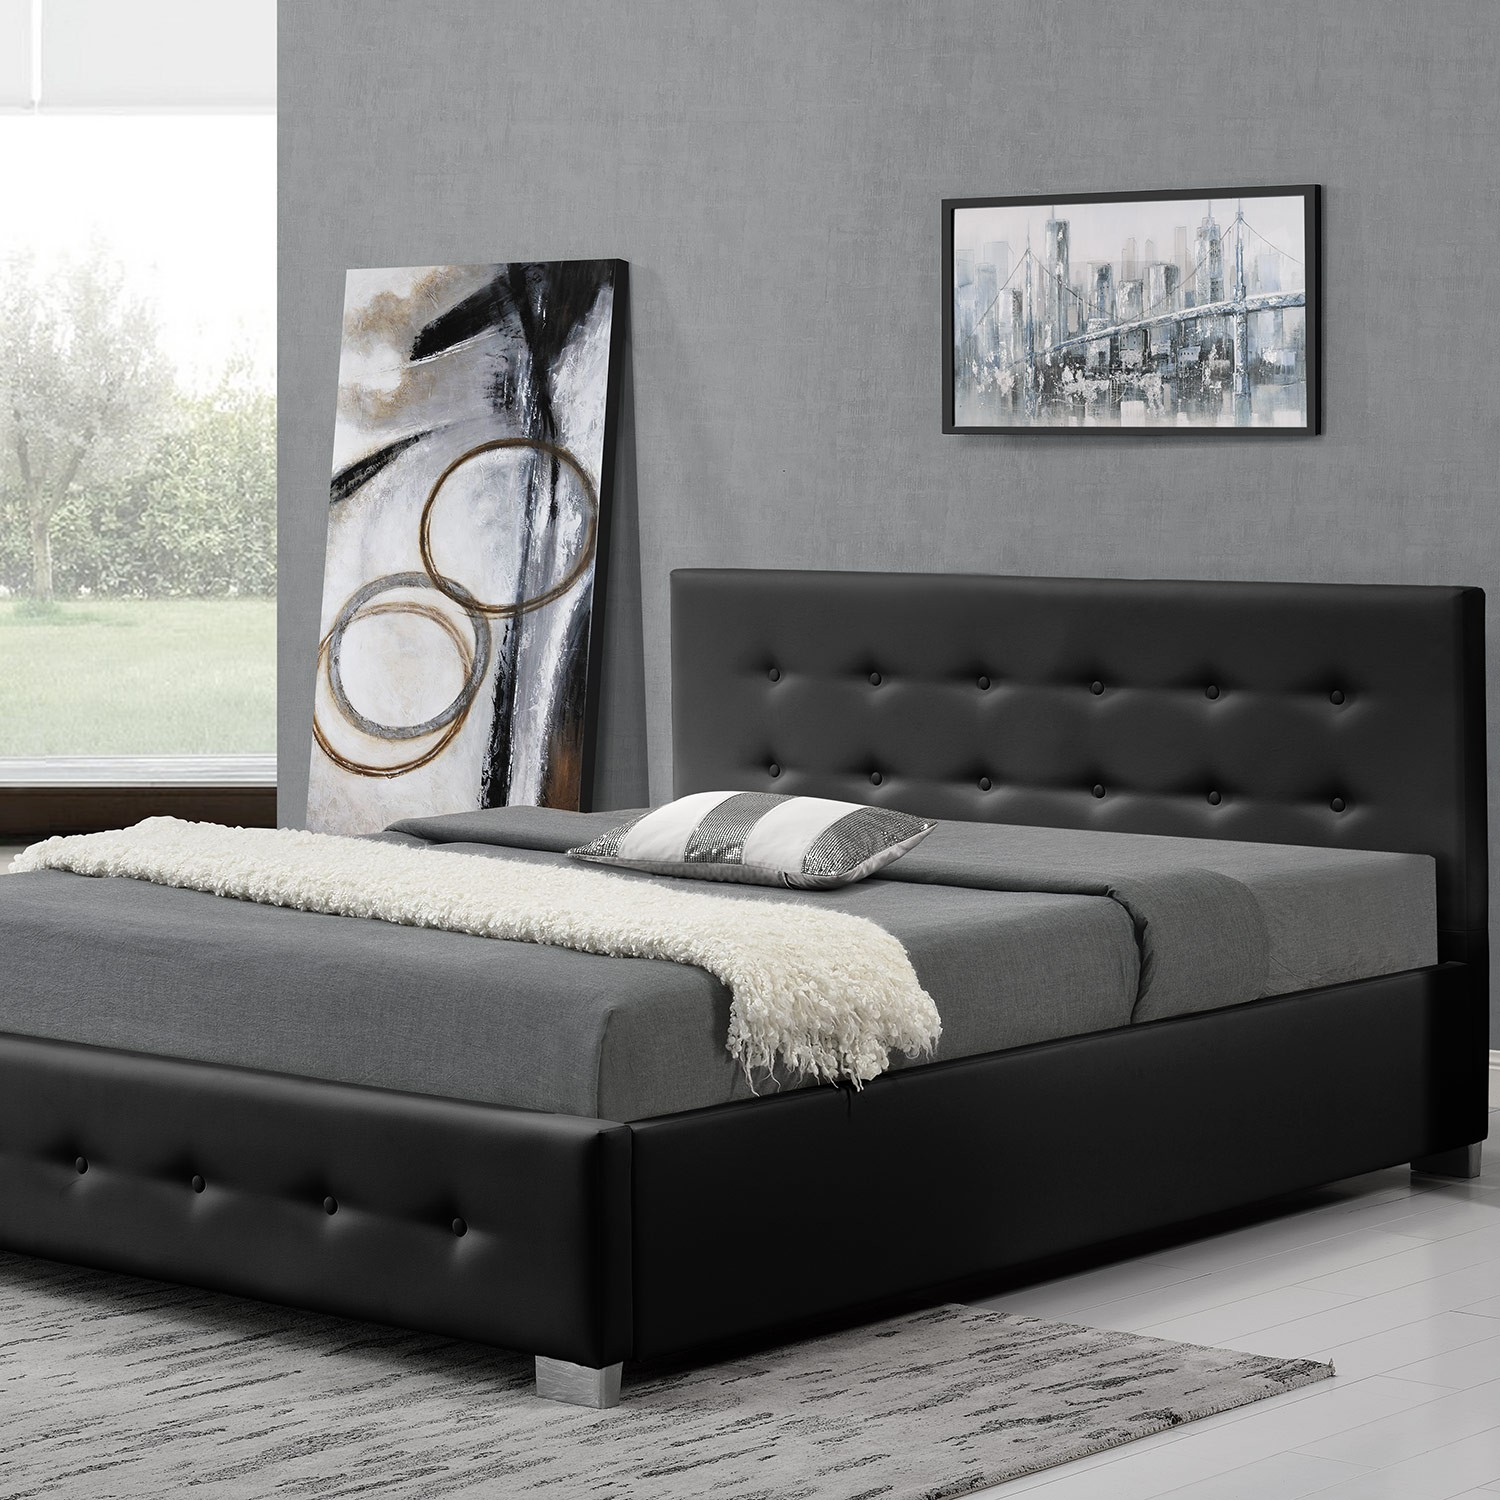 clapton 140 noir cadre de lit design avec coffre de. Black Bedroom Furniture Sets. Home Design Ideas